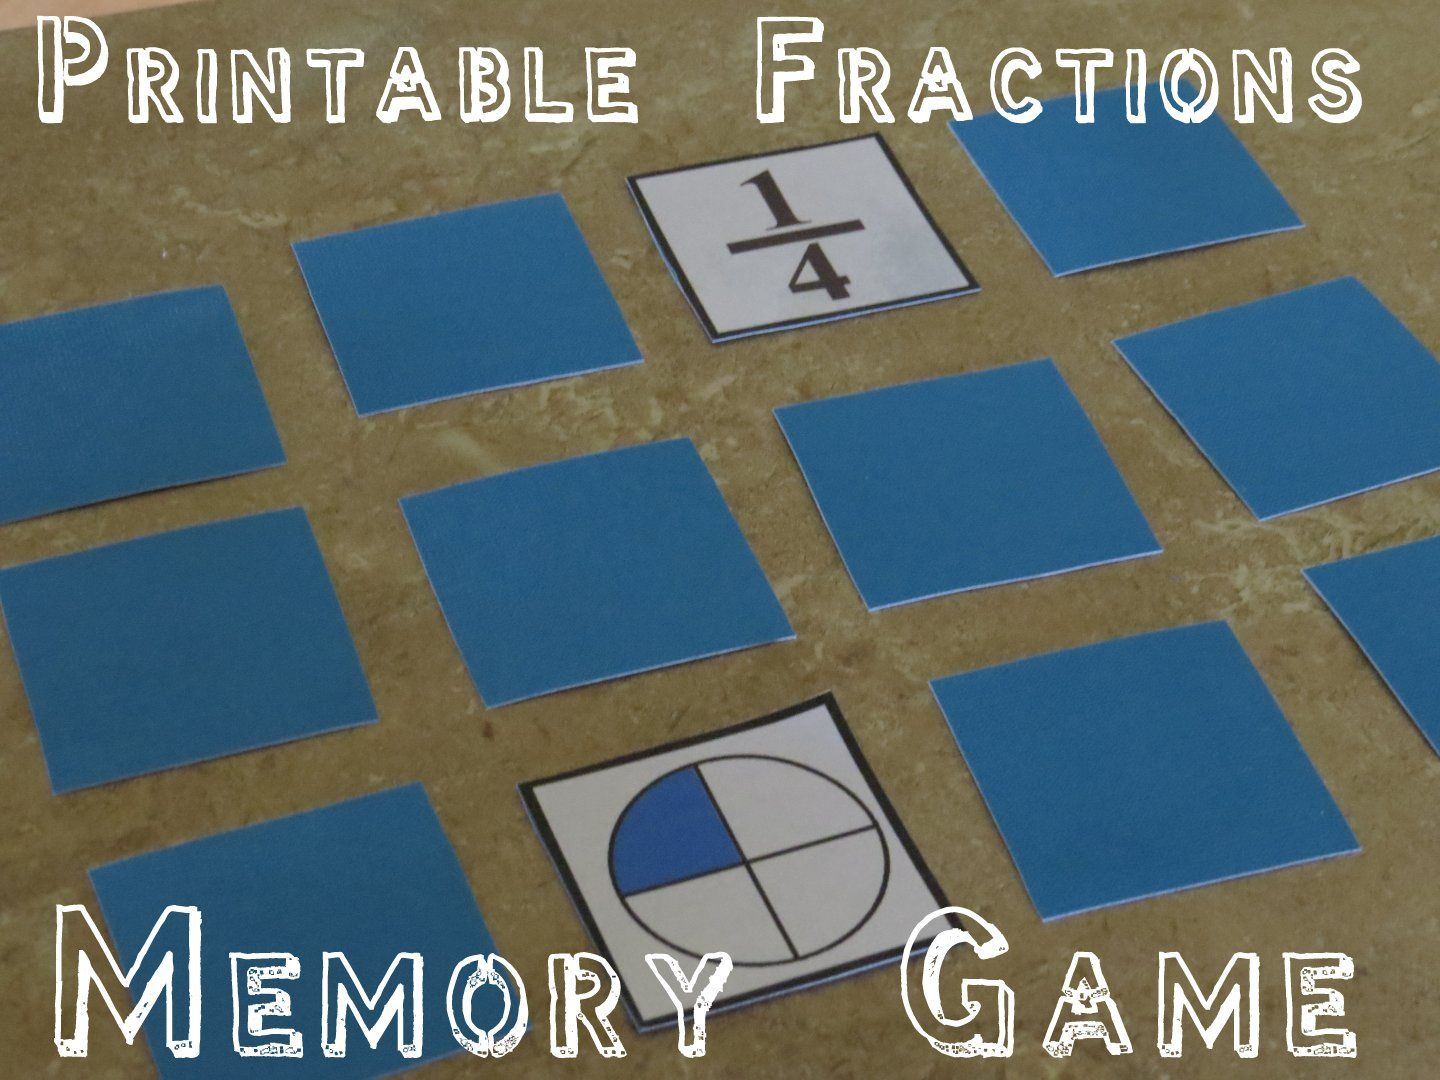 Printable Fraction Game Pieces | Fraction Worksheets | Pinterest ...